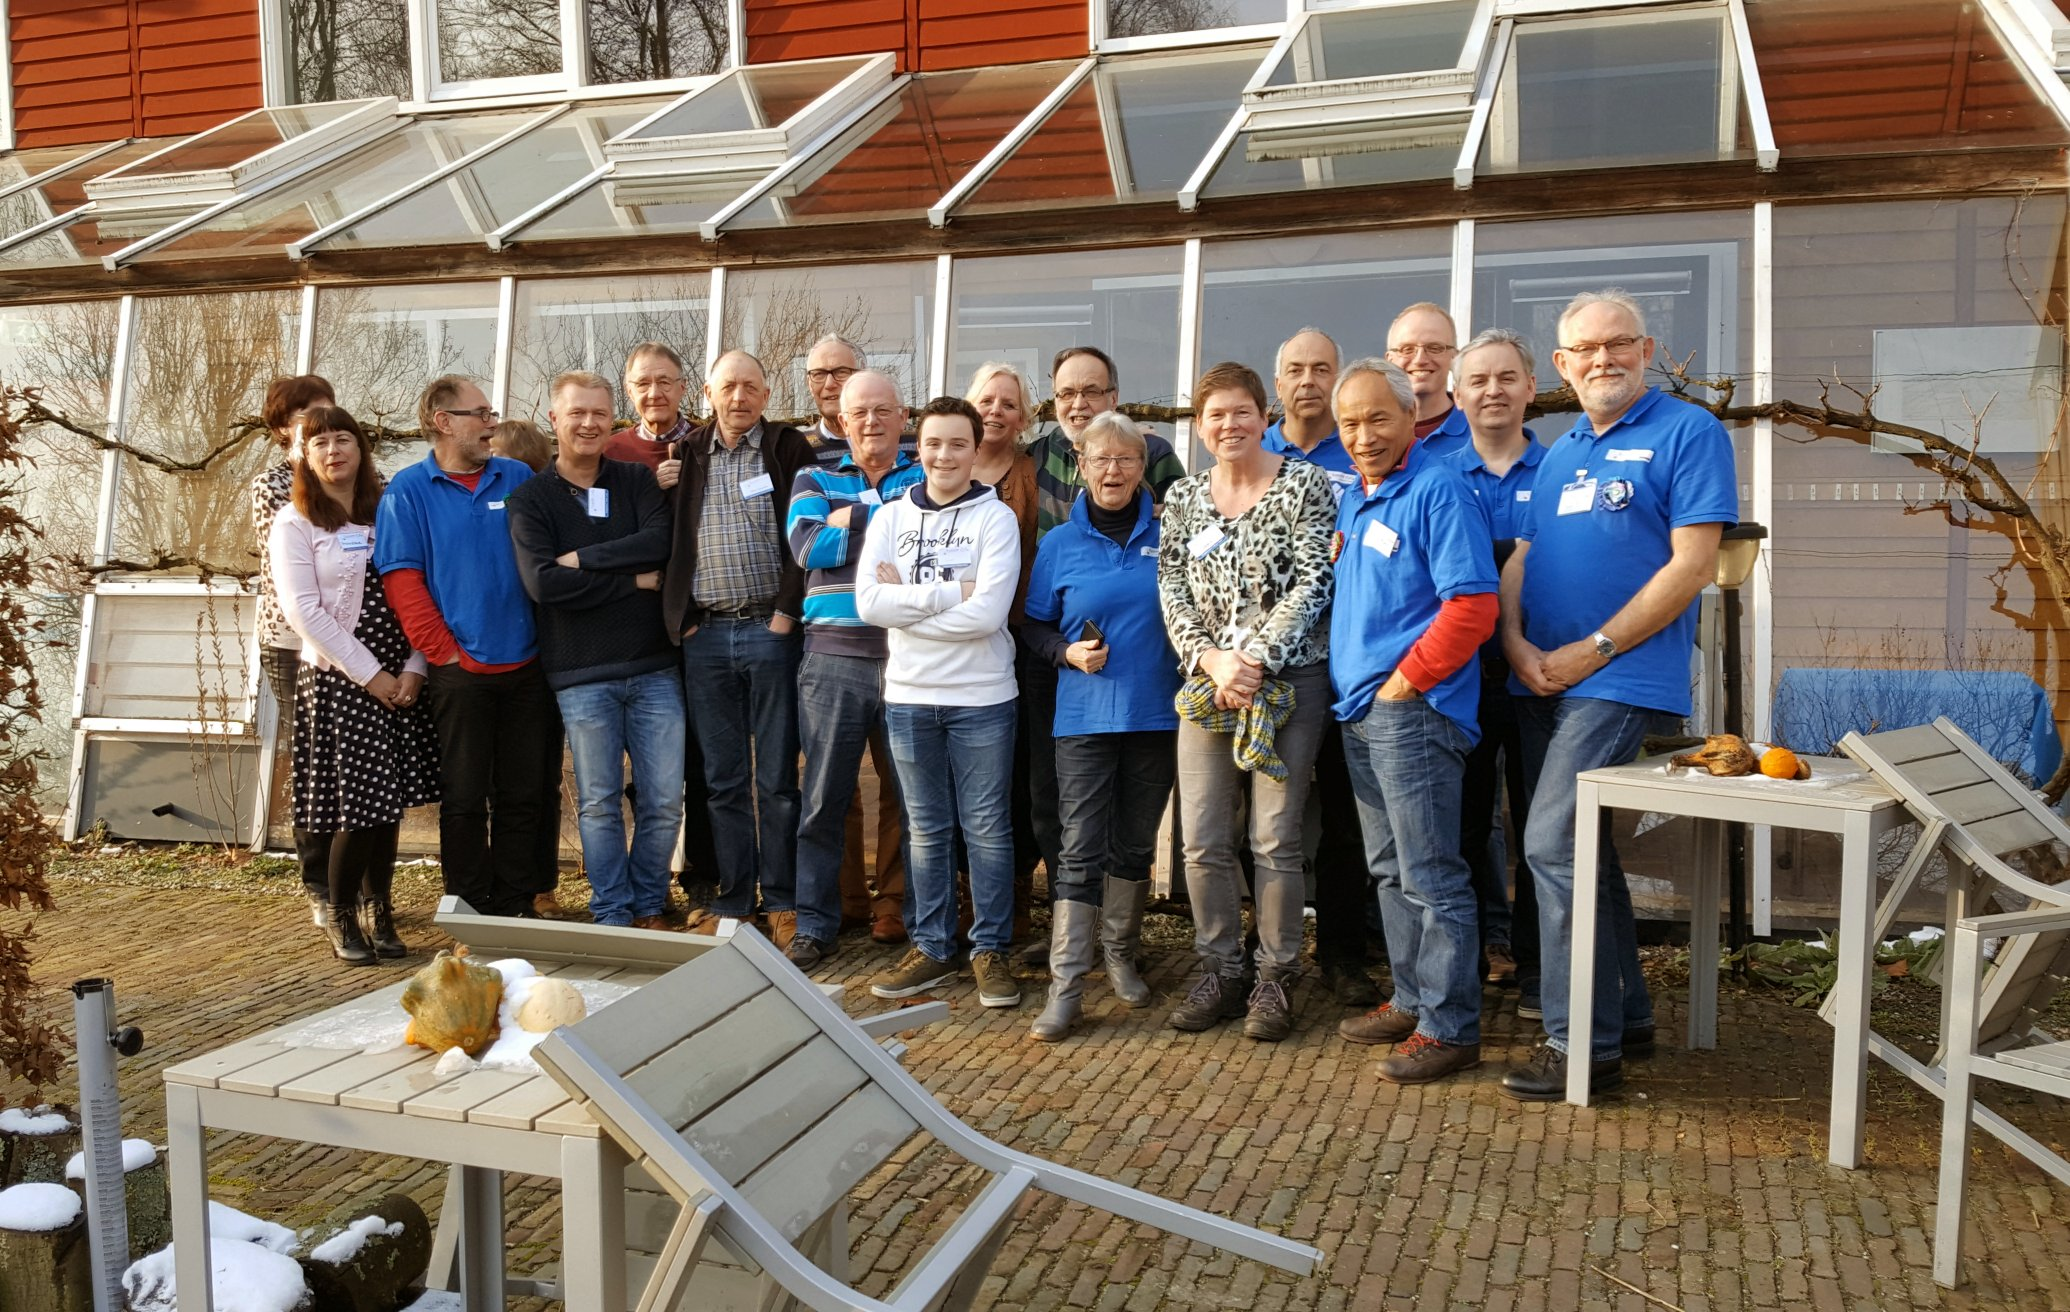 Repair Cafe in De Papaver goed bezocht!